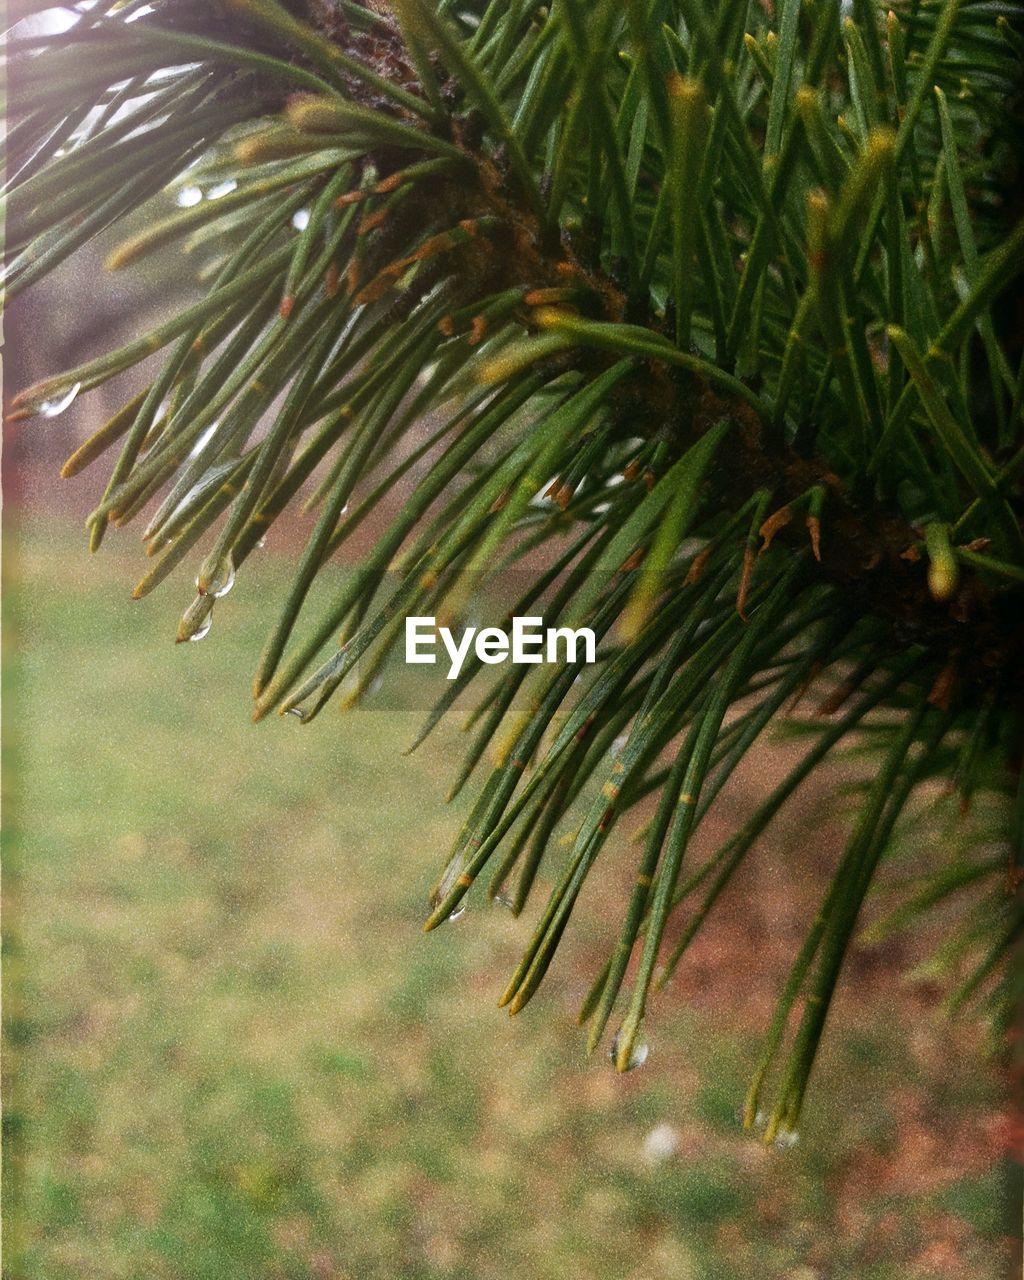 plant, growth, tree, green color, beauty in nature, close-up, leaf, nature, no people, plant part, day, outdoors, focus on foreground, pine tree, branch, needle - plant part, tranquility, selective focus, coniferous tree, sunlight, palm leaf, leaves, raindrop